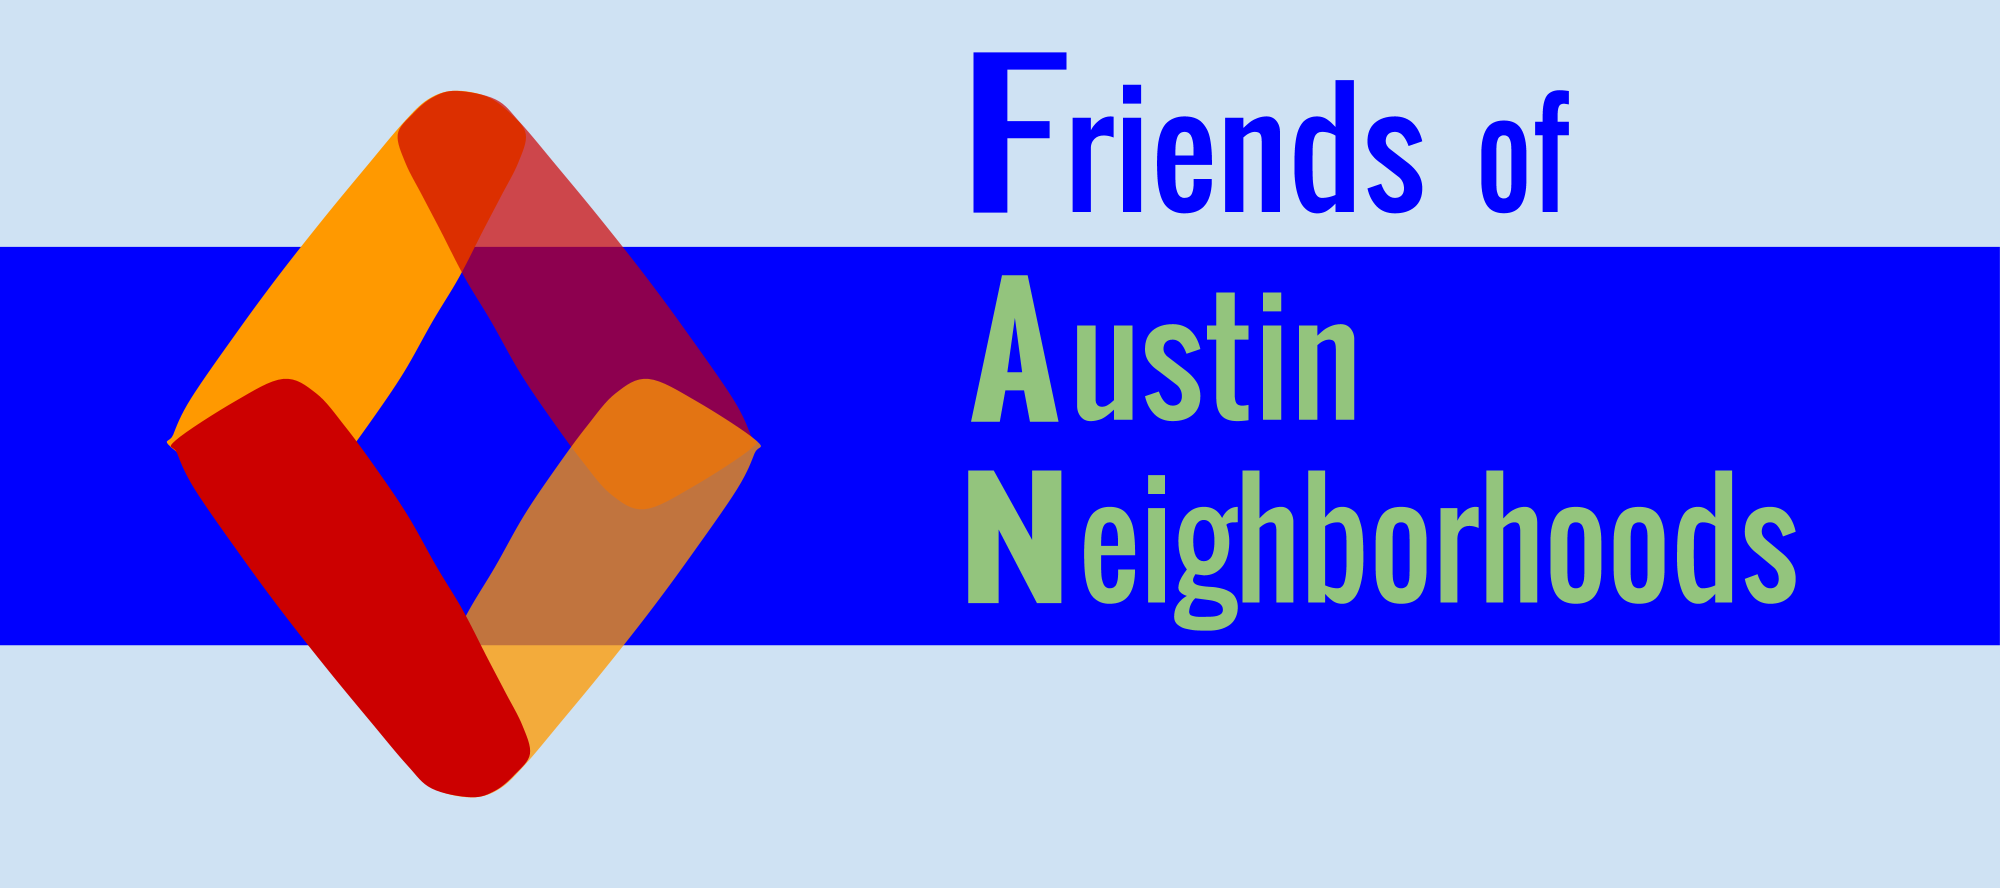 Friends of Austin Neighborhoods